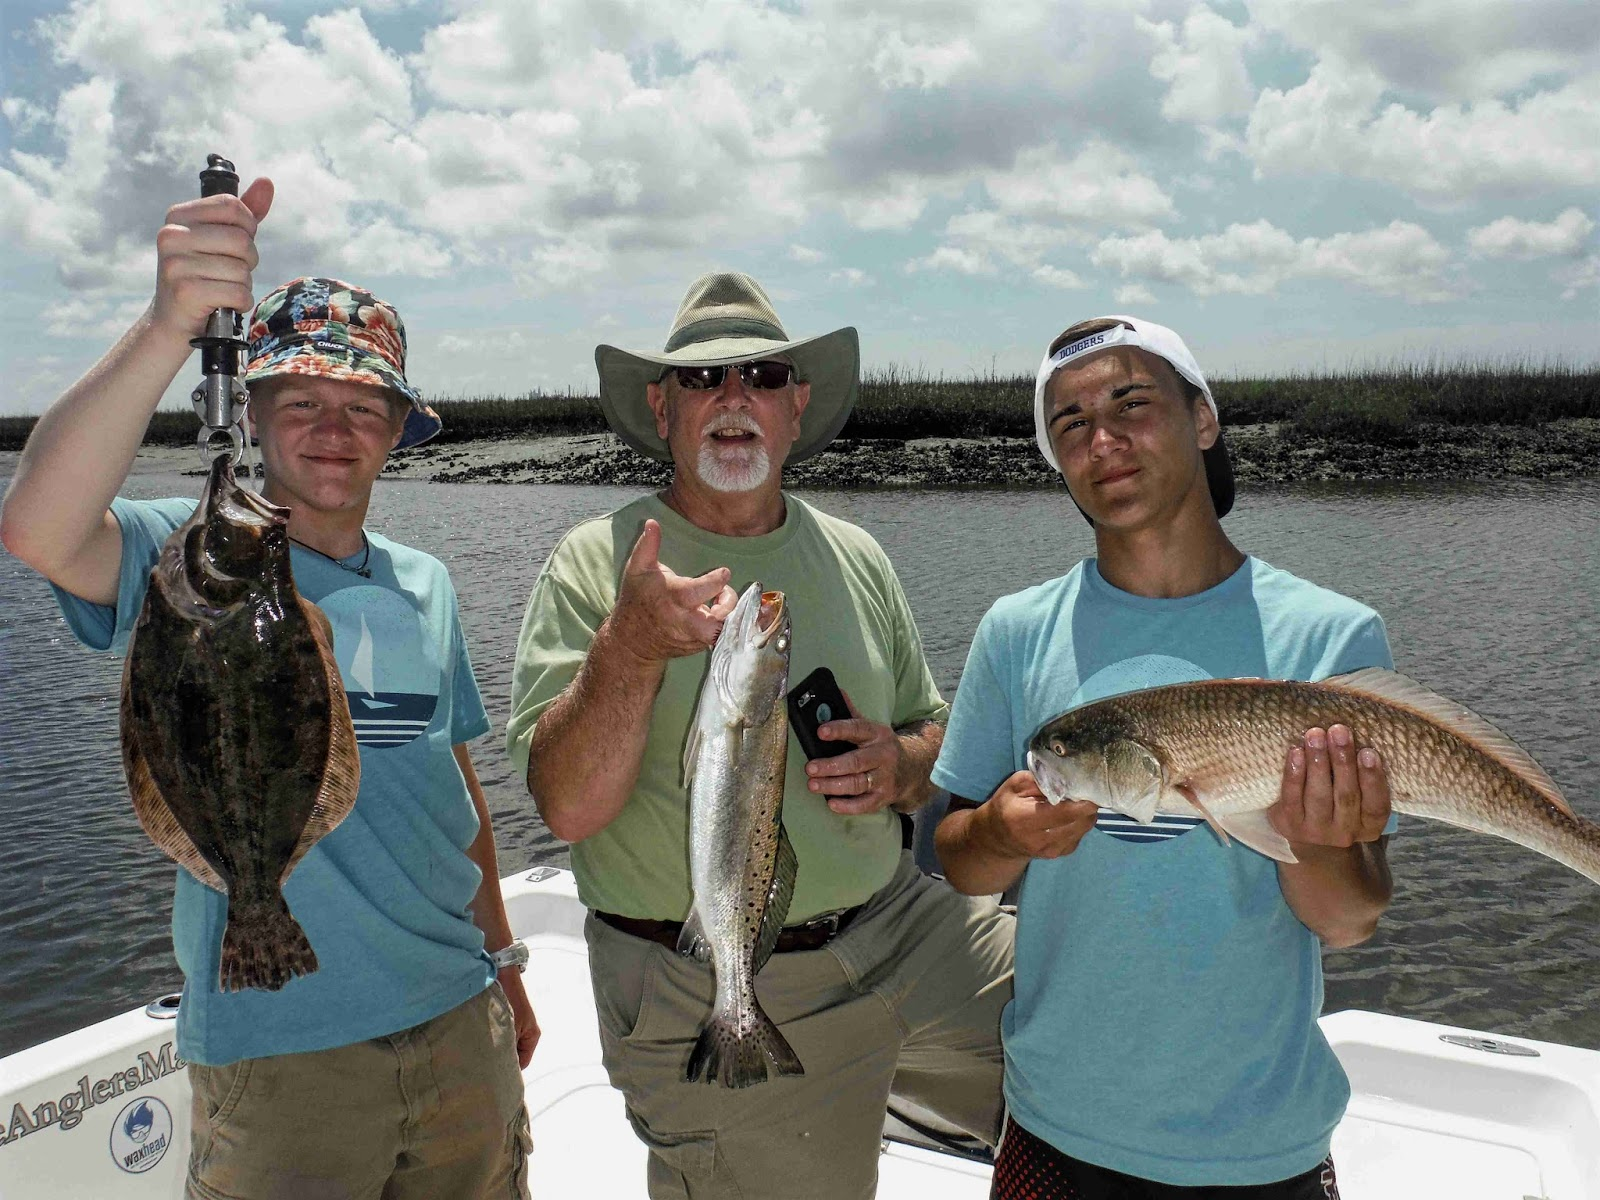 Amelia island fishing reports jolley good fishing at for Florida fishing reports